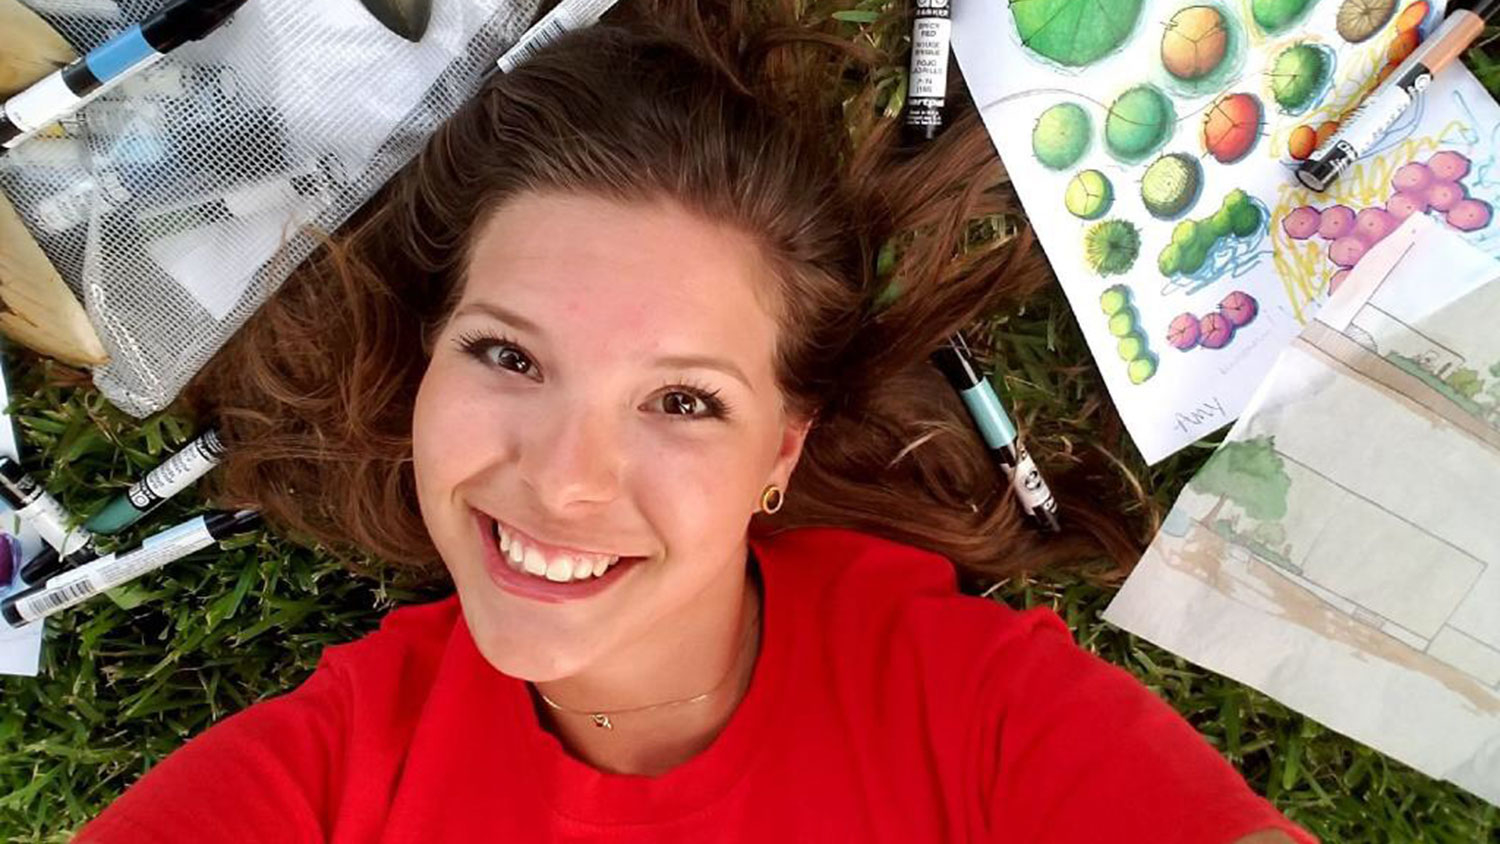 Horticultural Science student Amy Arnold